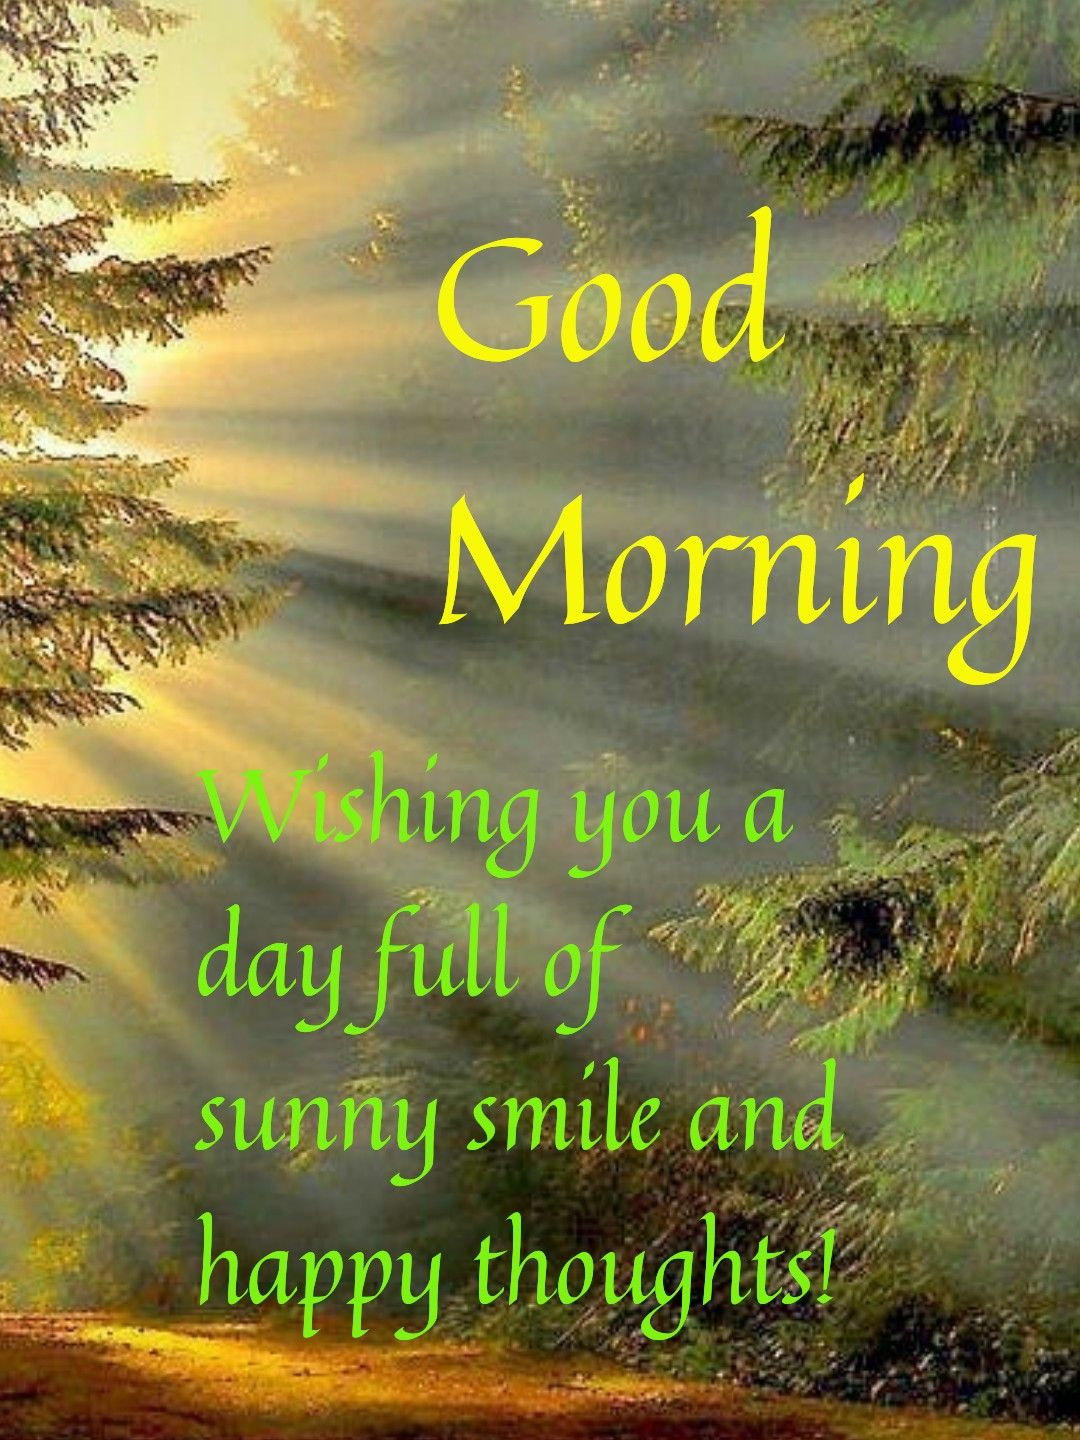 Good Morning Greetings Good Morning Inspirational Quotes Good